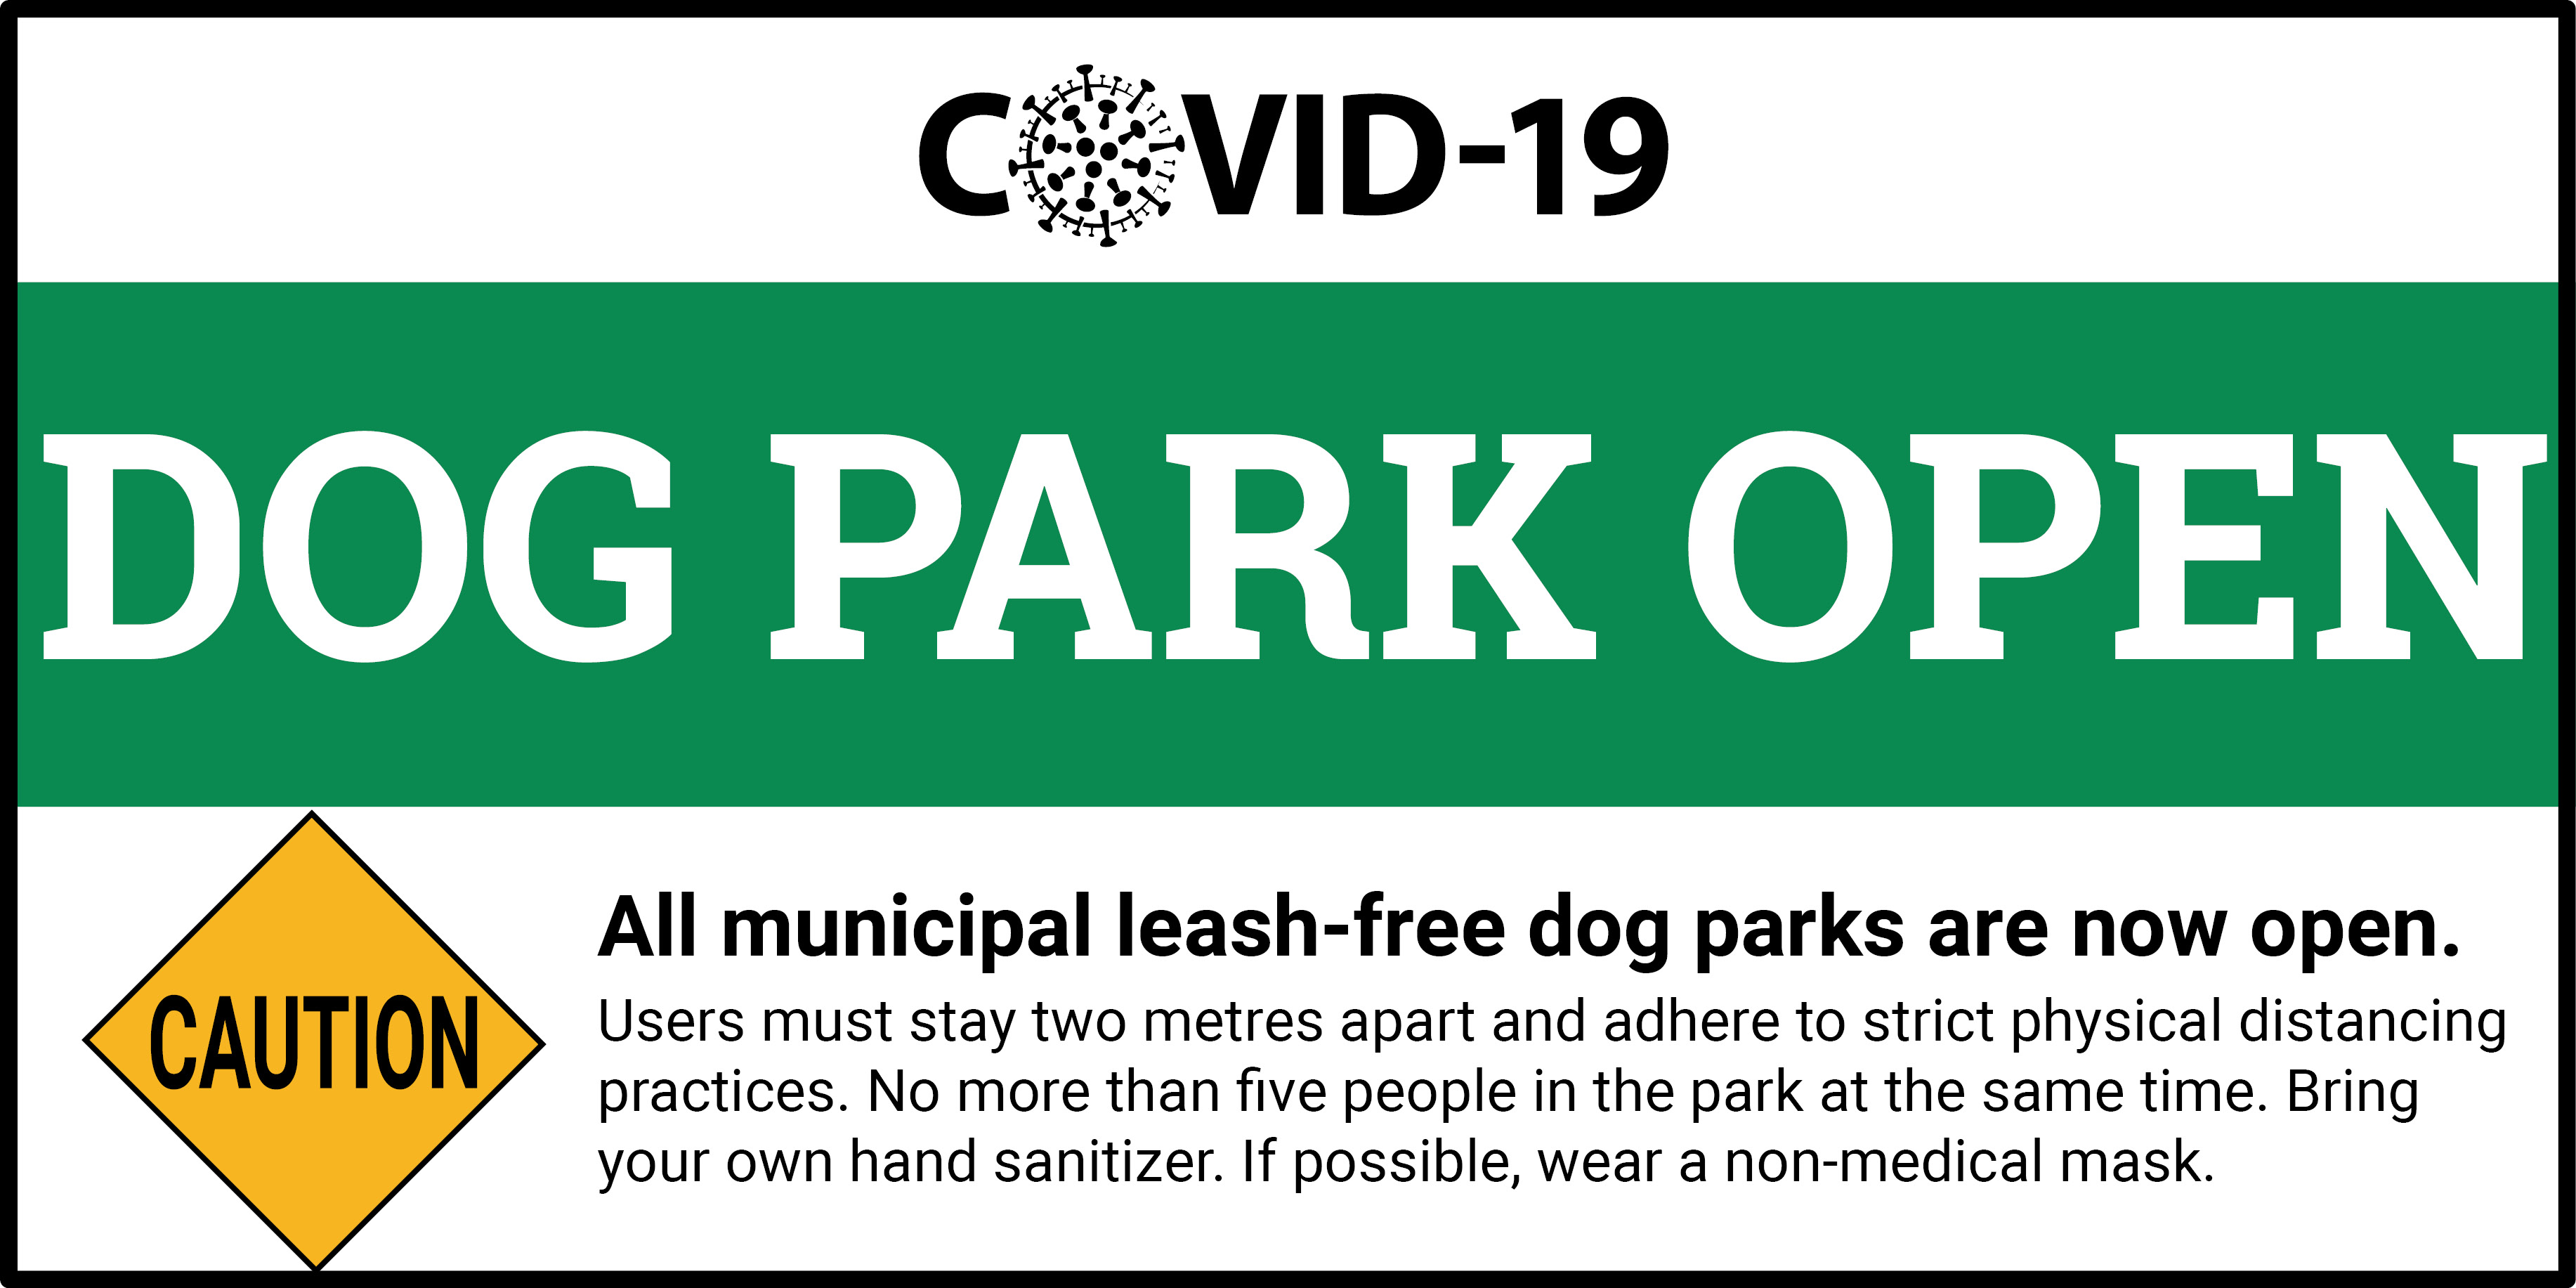 Graphic stating that leash-free dog parks are open